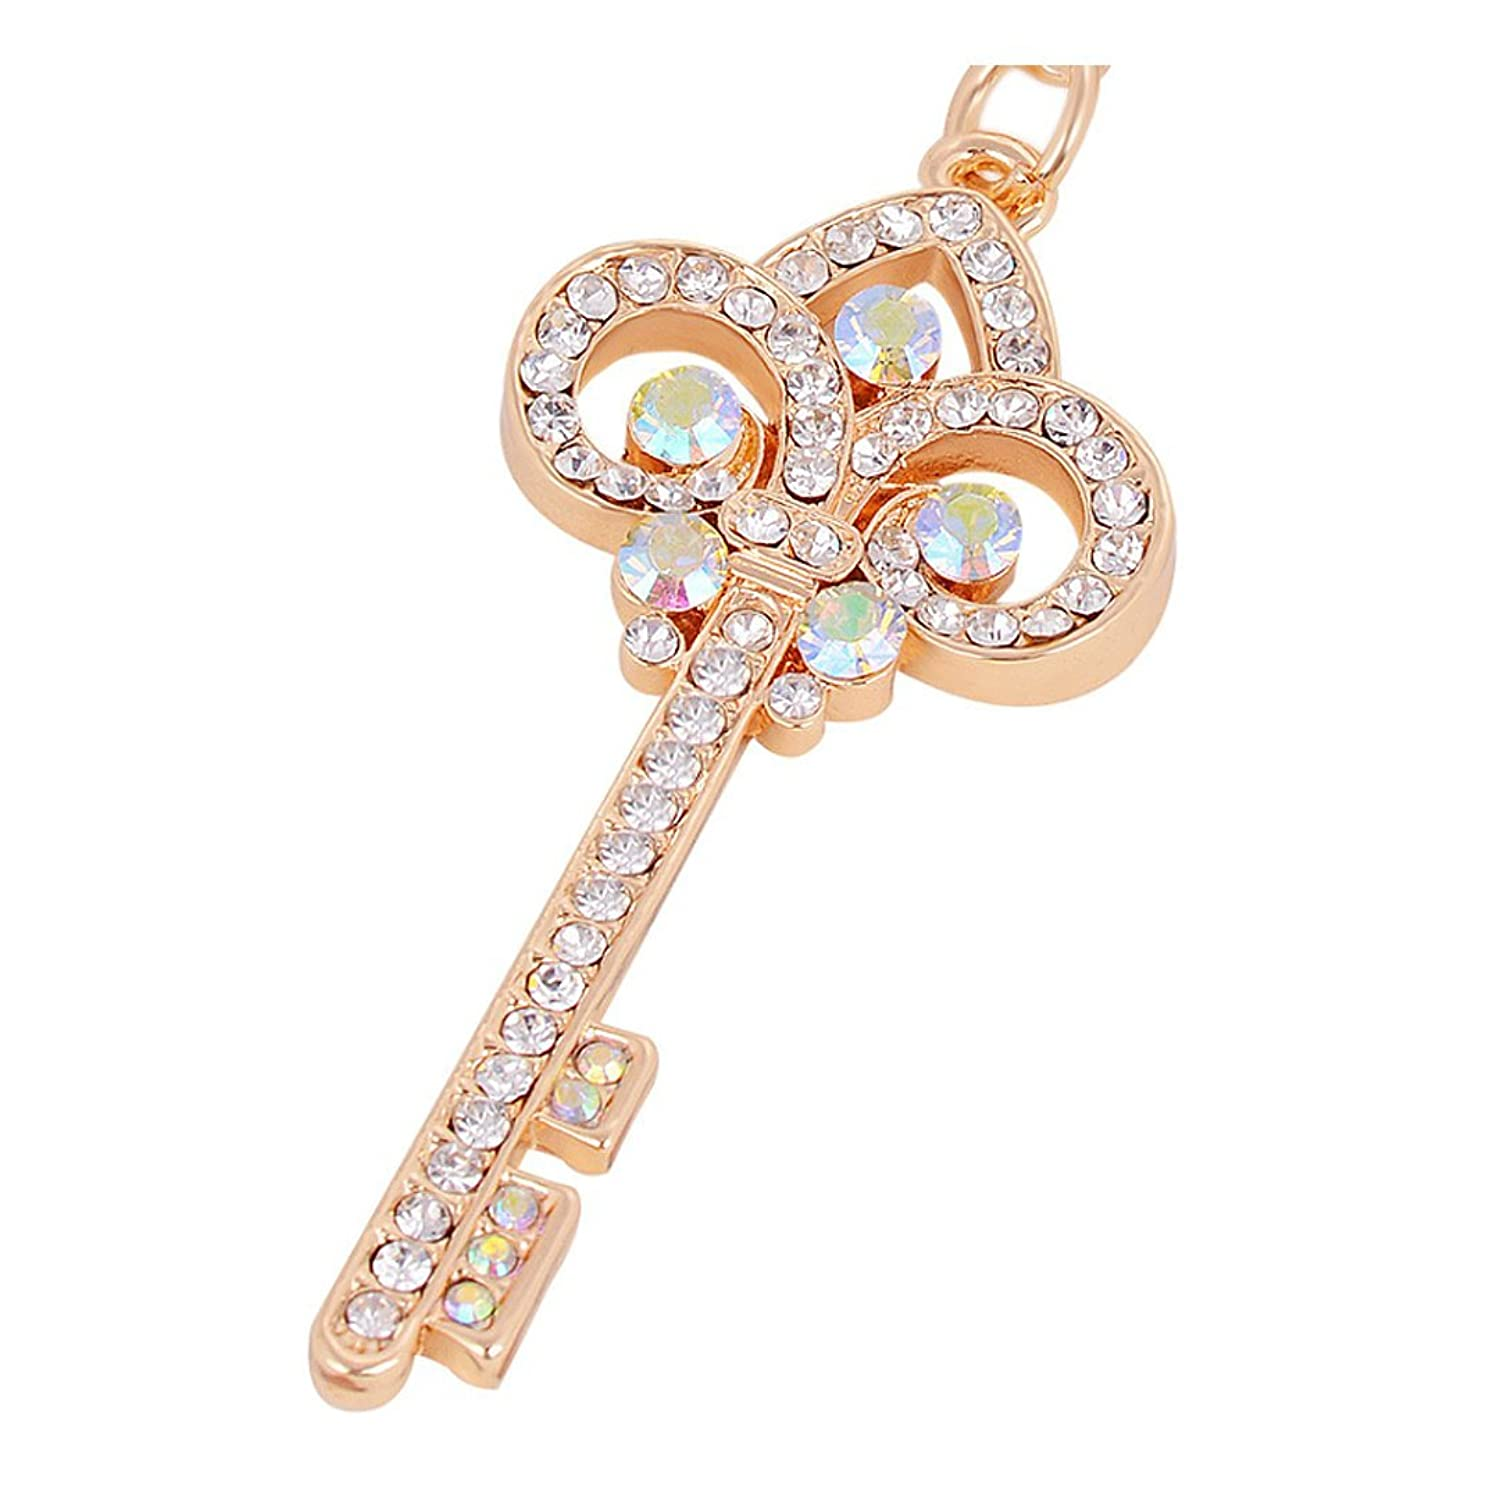 Gold Plated Key Ring Exquisite Rhinestone Keychain Bag & Car Accessory